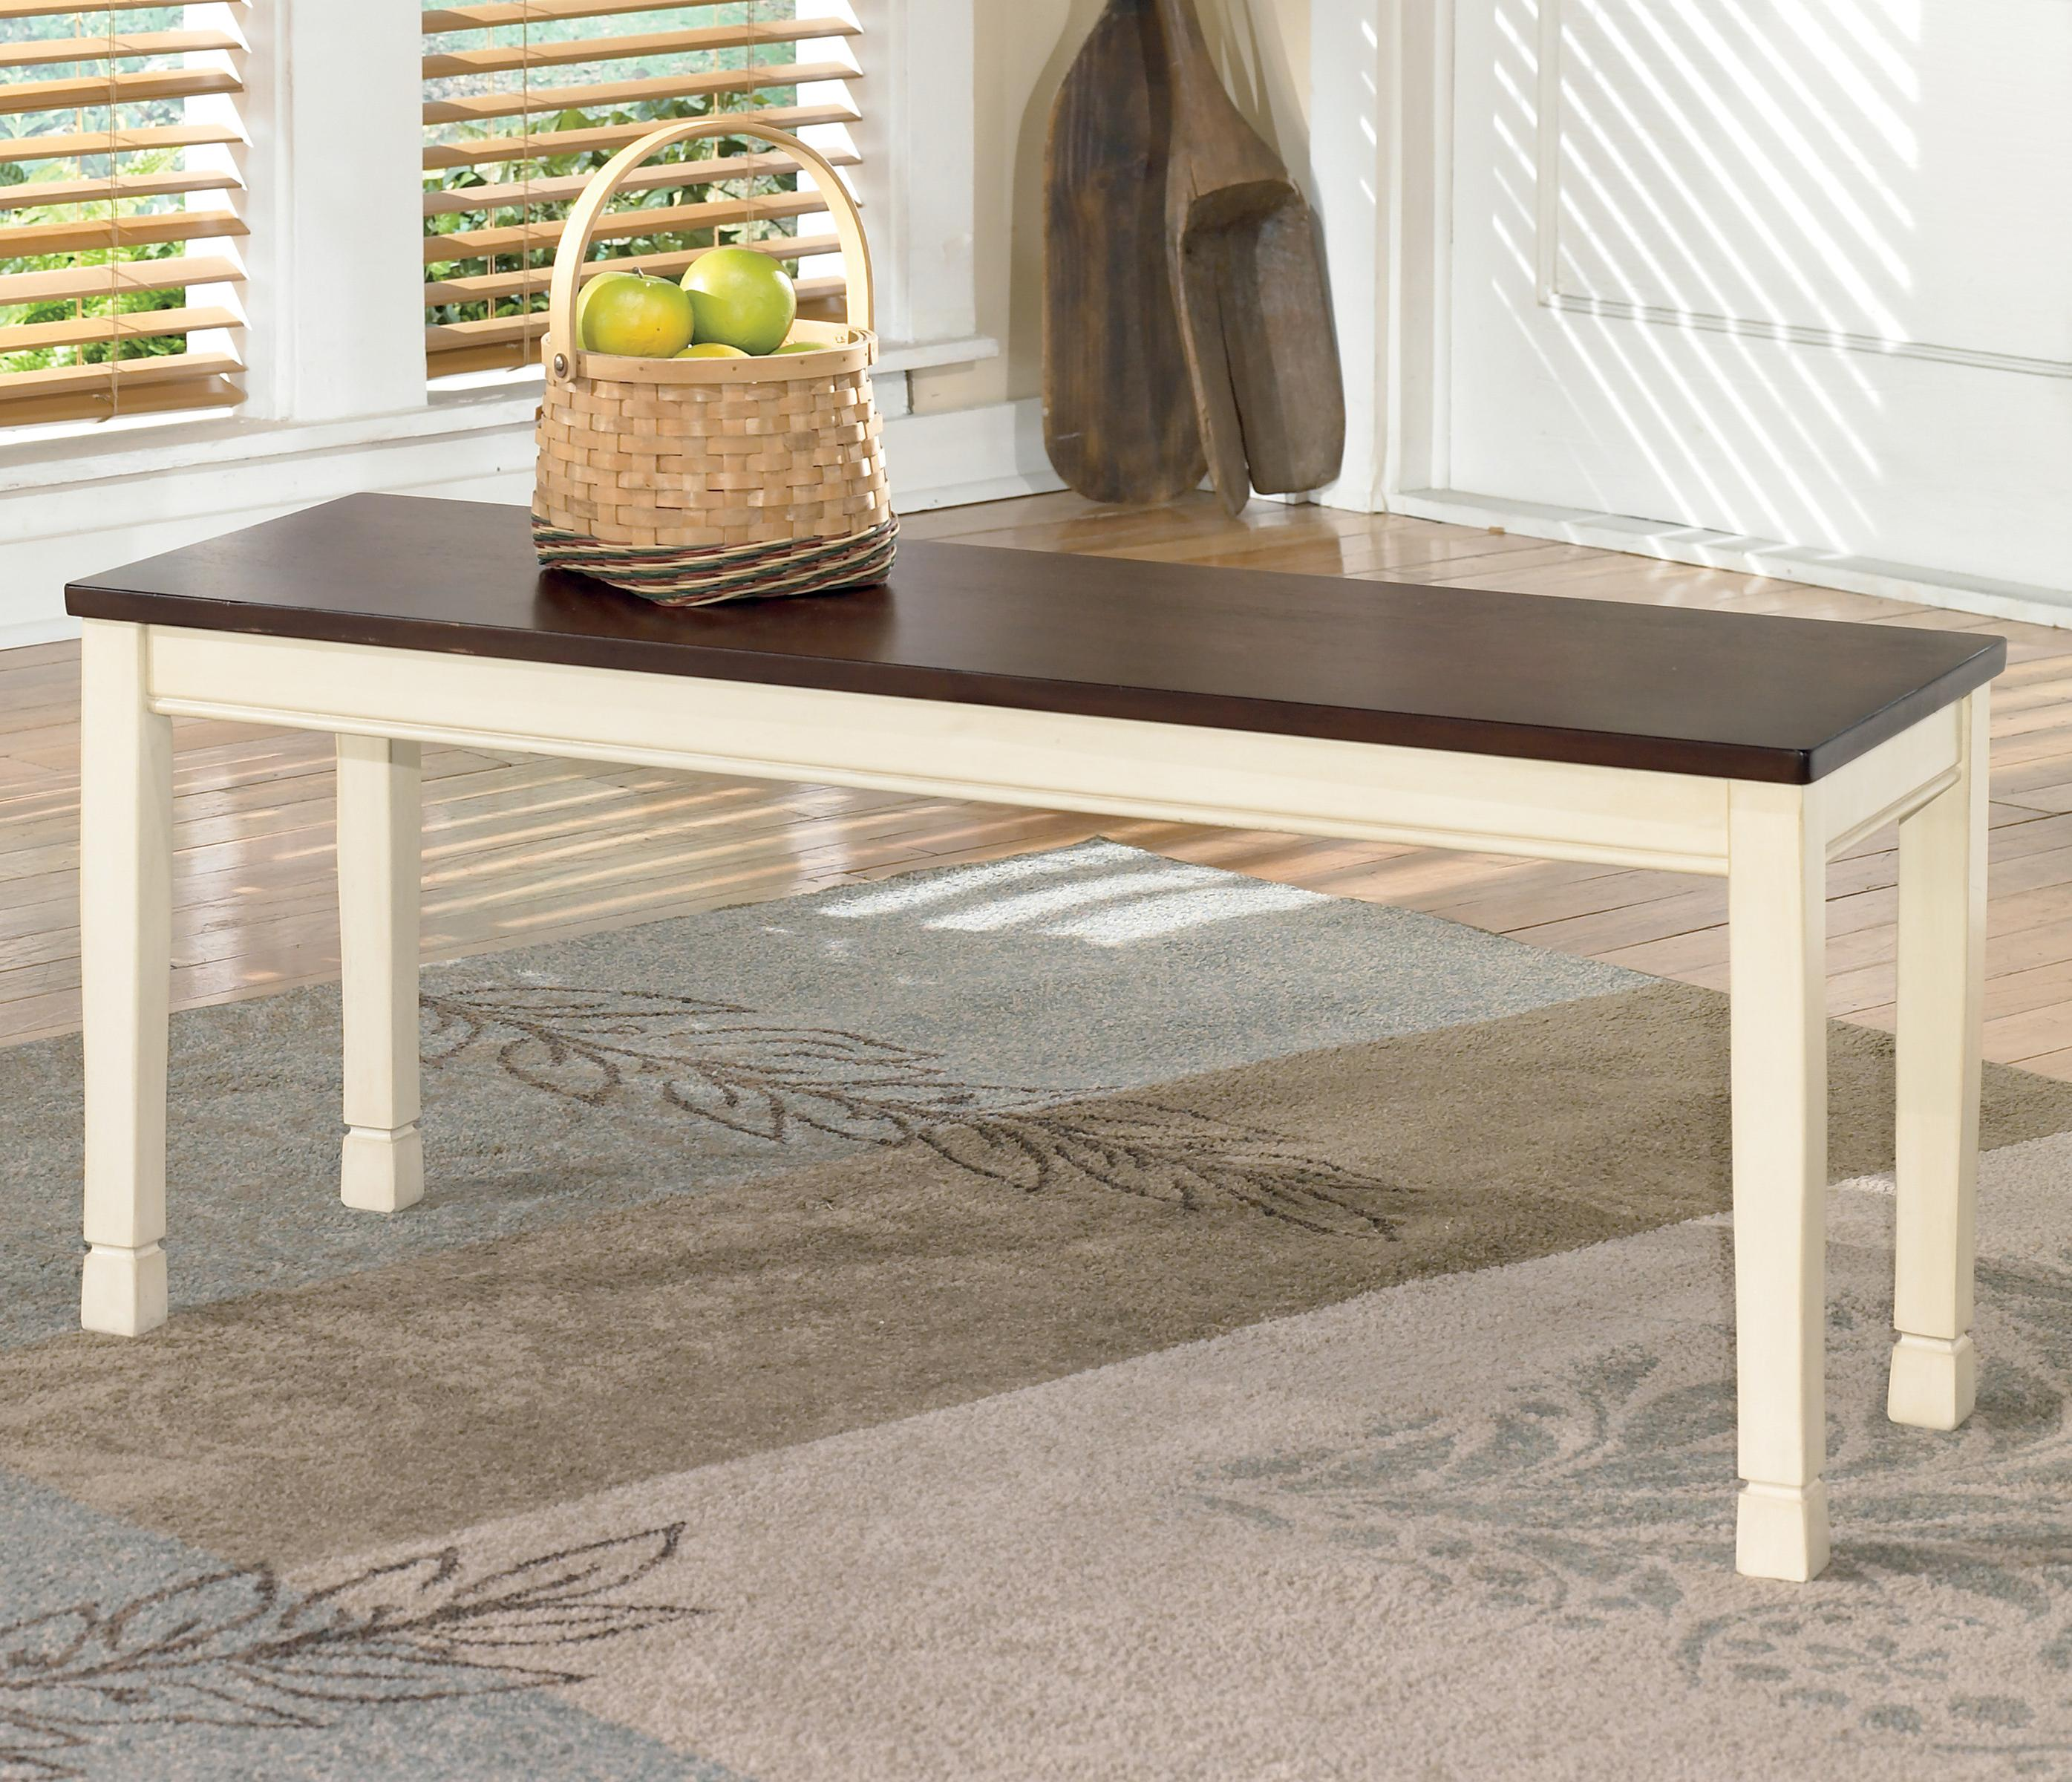 Signature Design by Ashley Whitesburg Large Dining Room Bench - Item Number: D583-00